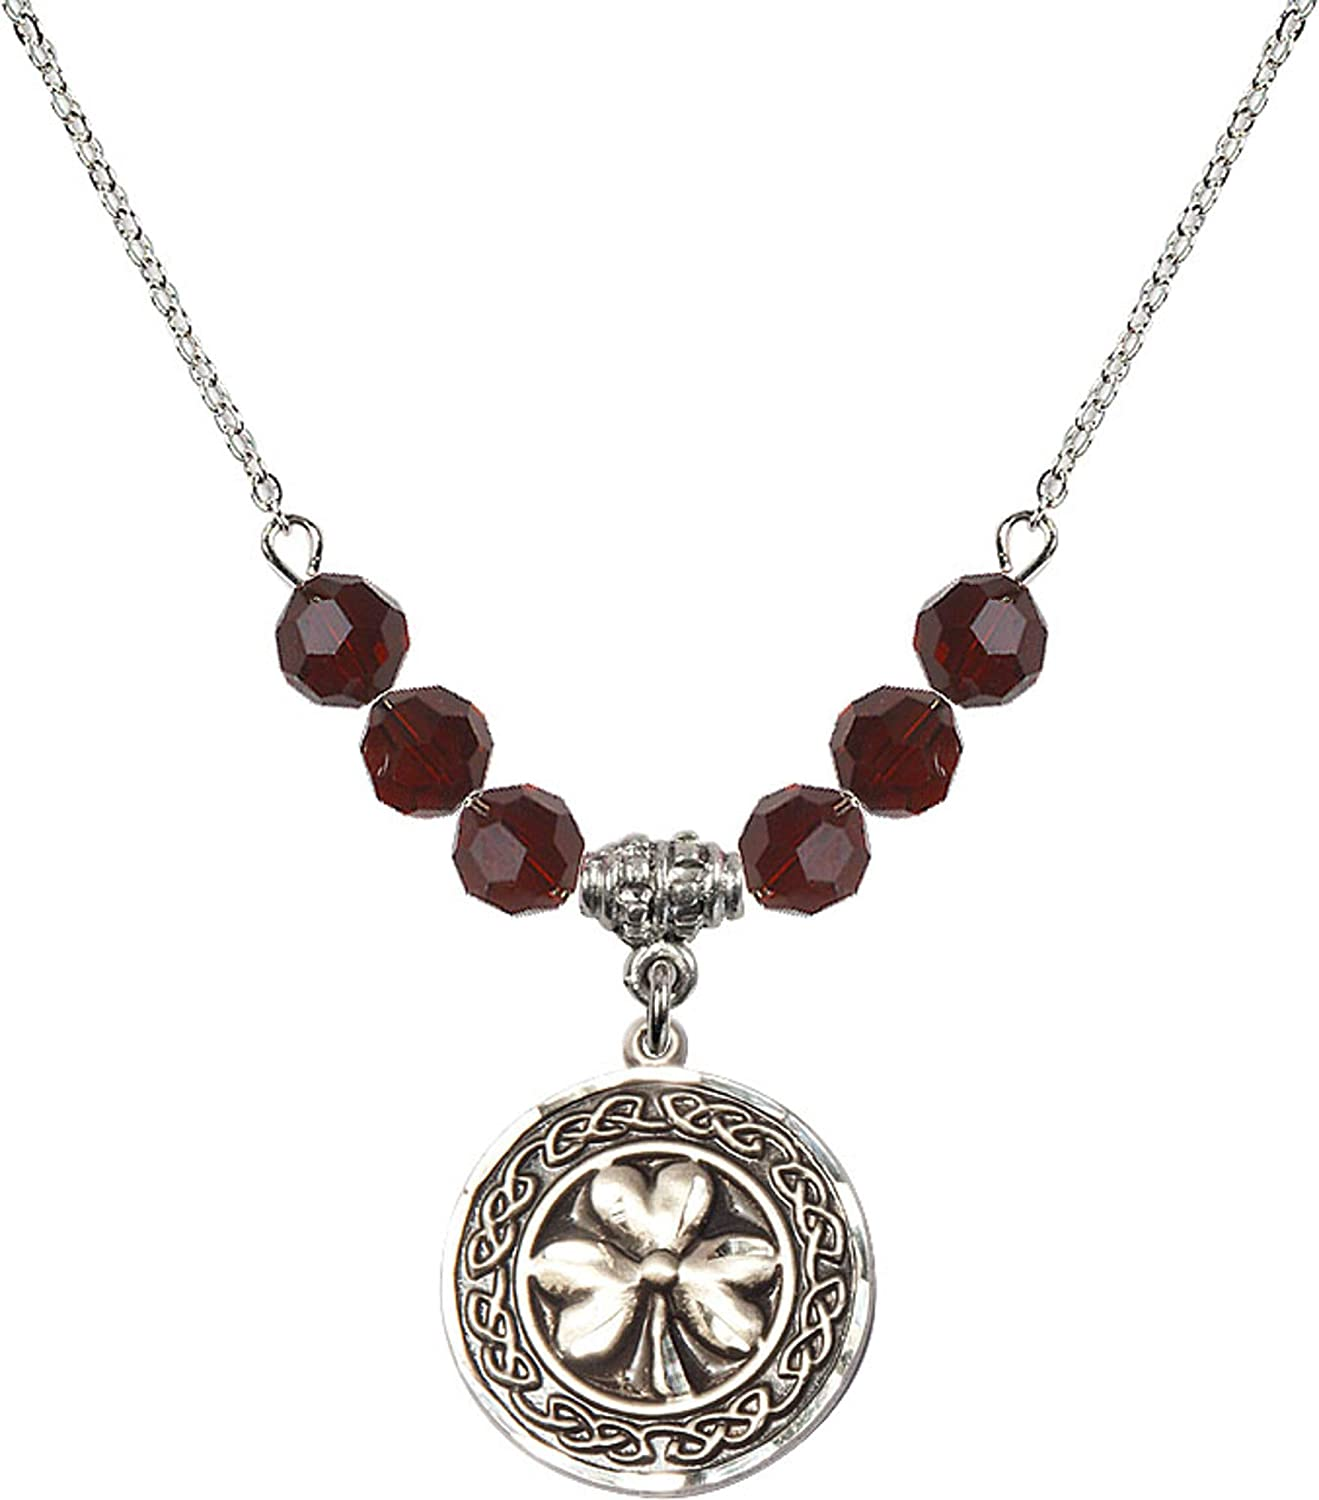 Bonyak Jewelry 18 Inch Rhodium Plated Necklace w// 6mm Red January Birth Month Stone Beads and Shamrock w//Celtic Border Charm